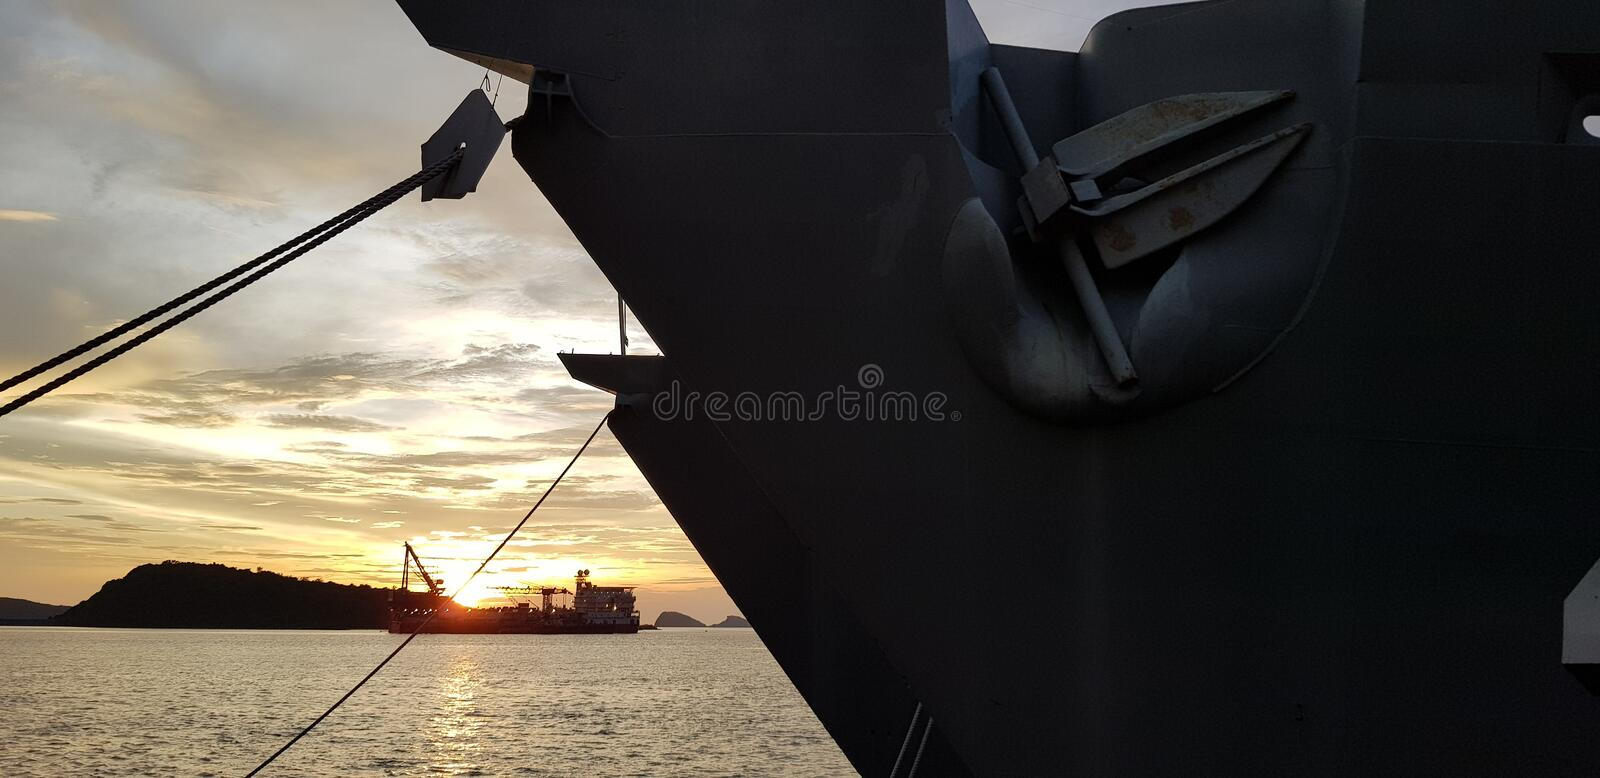 Navy ship docking in harbour with off shore boat in the background stock photography